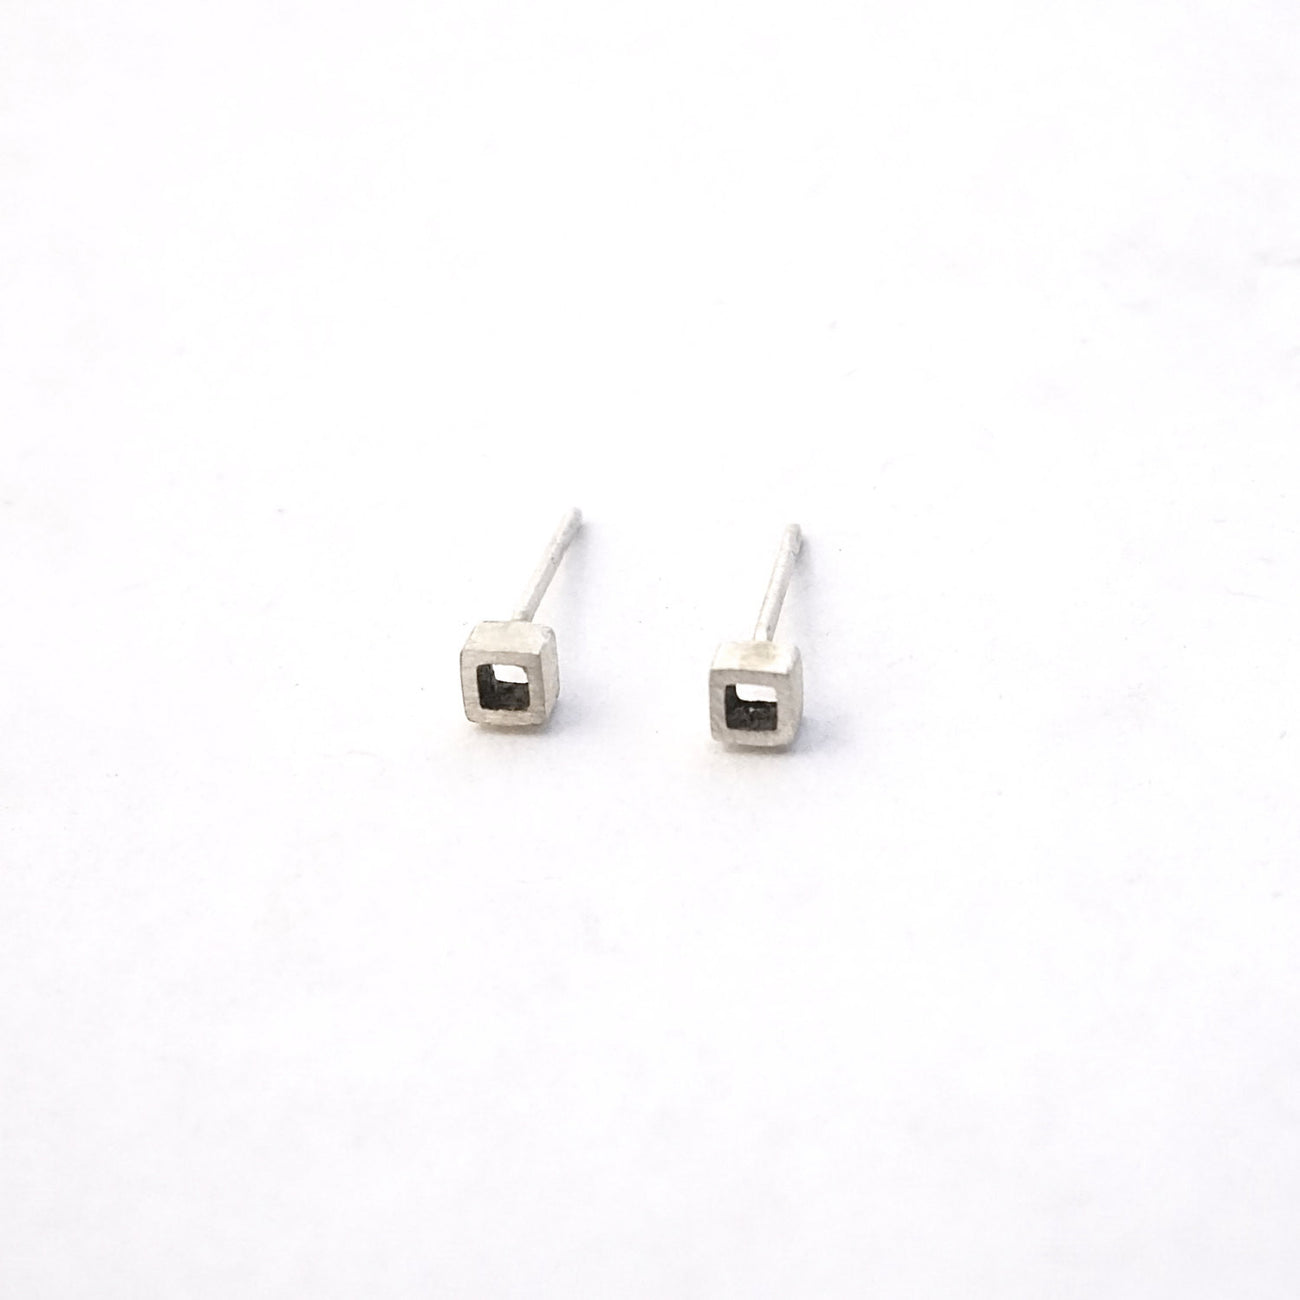 Contemporary Hand-Crafted Open Square Stud Earrings - 0160 - Virginia Wynne Designs